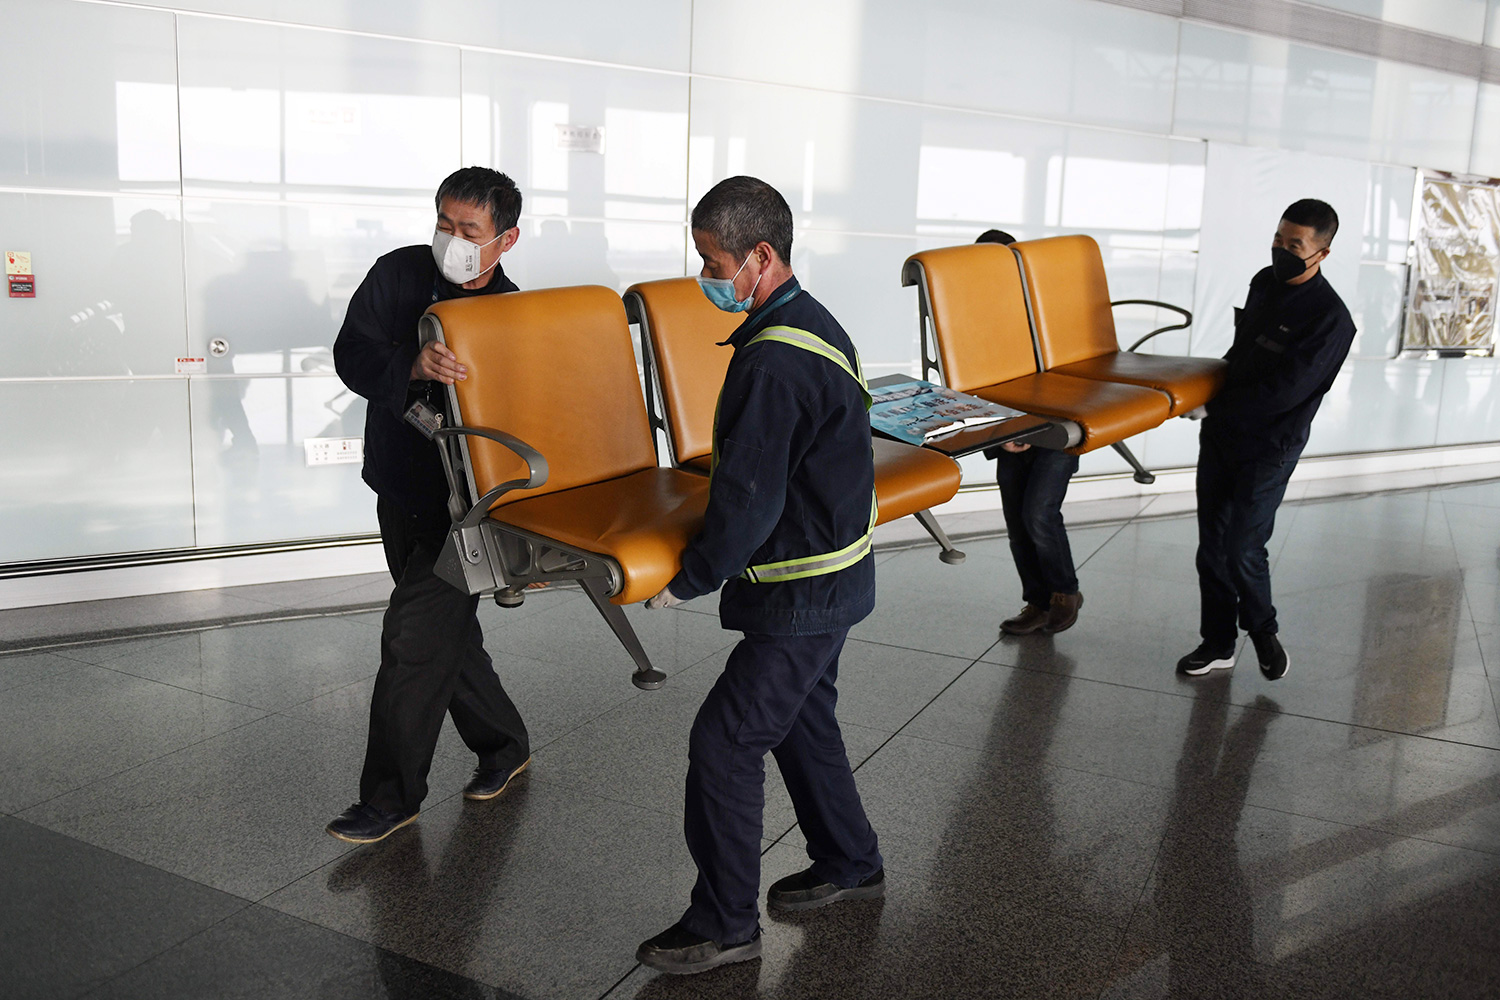 Workers wear face masks as they remove seating from a public area at the Beijing Capital Airport in Beijing on March 5, 2020